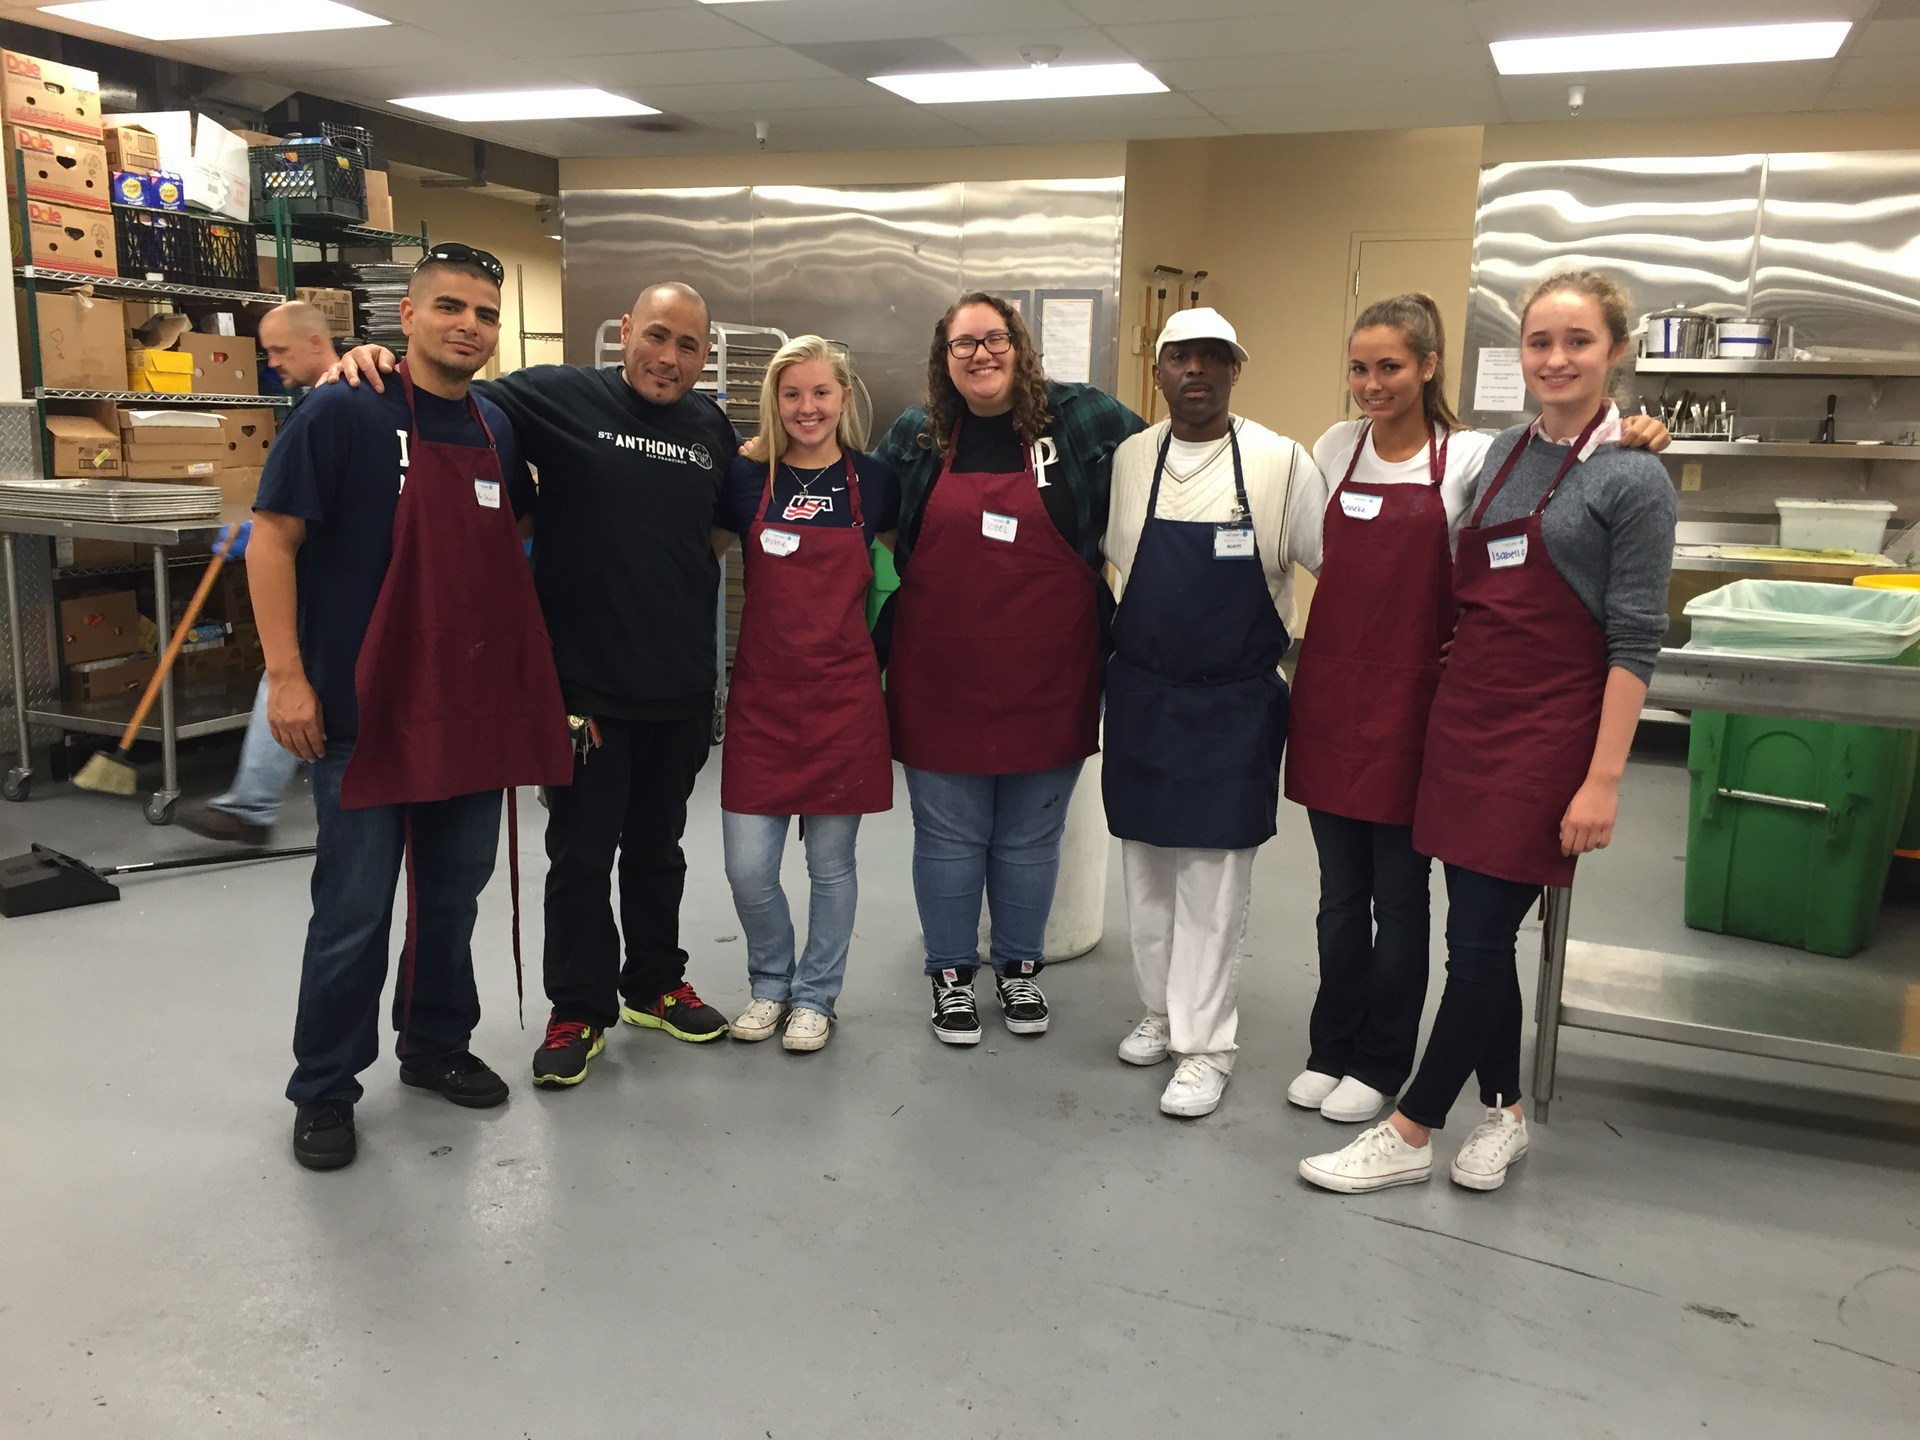 Students and staff volunteering at St. Anthony's Dining Room